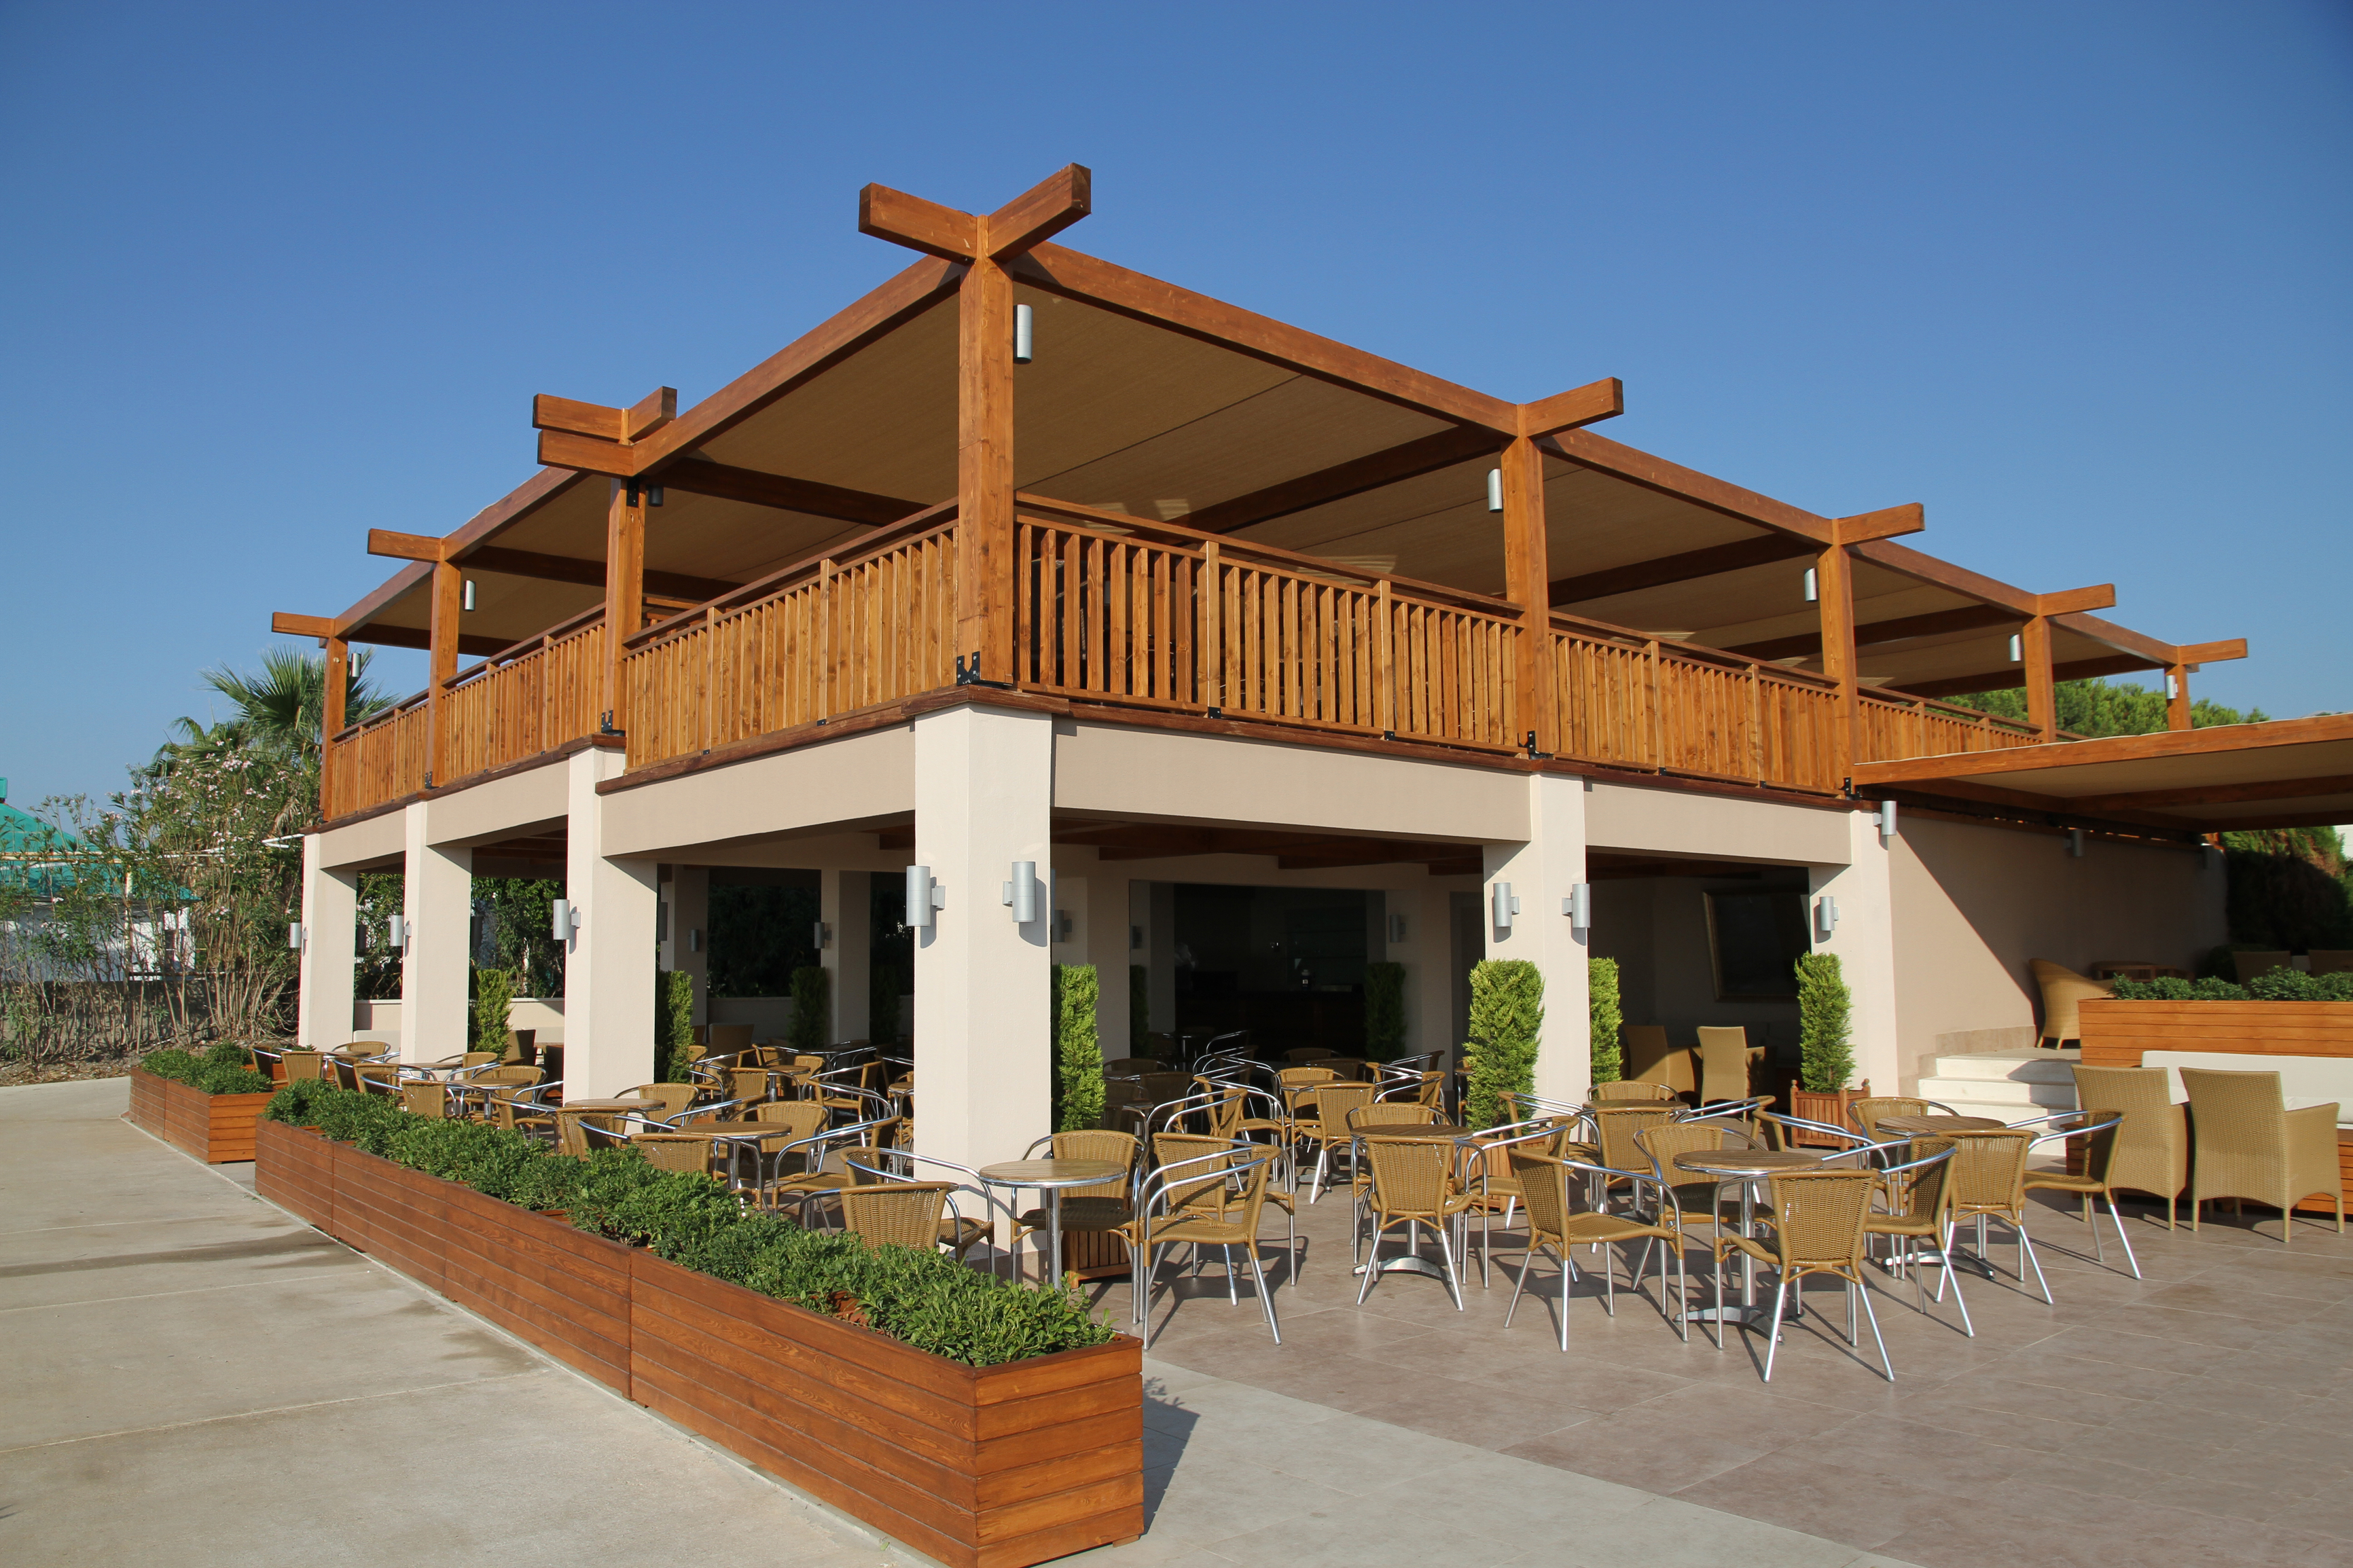 Armstrong cal builders for Restaurant exterior design pictures